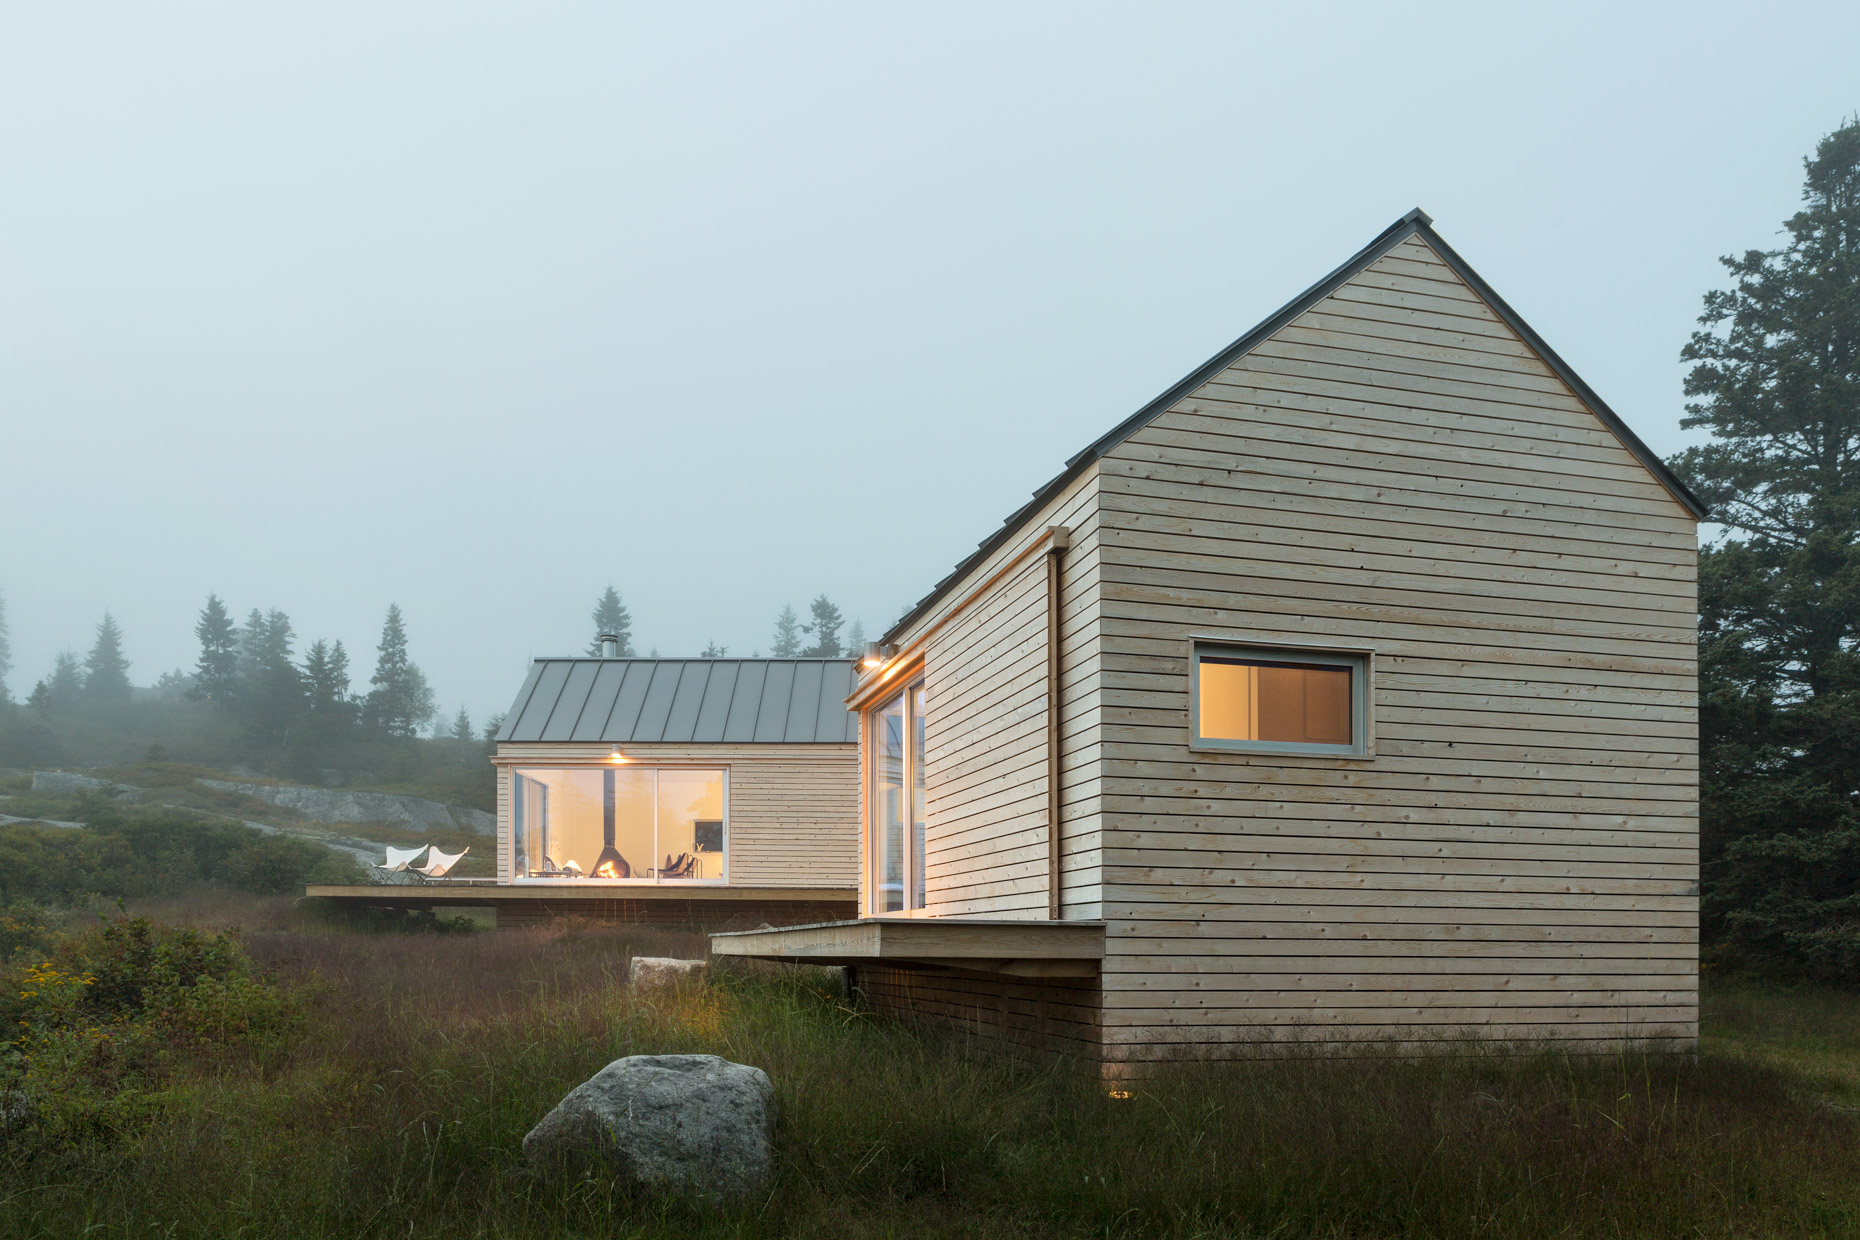 Two Dwellings on a Foggy Evening